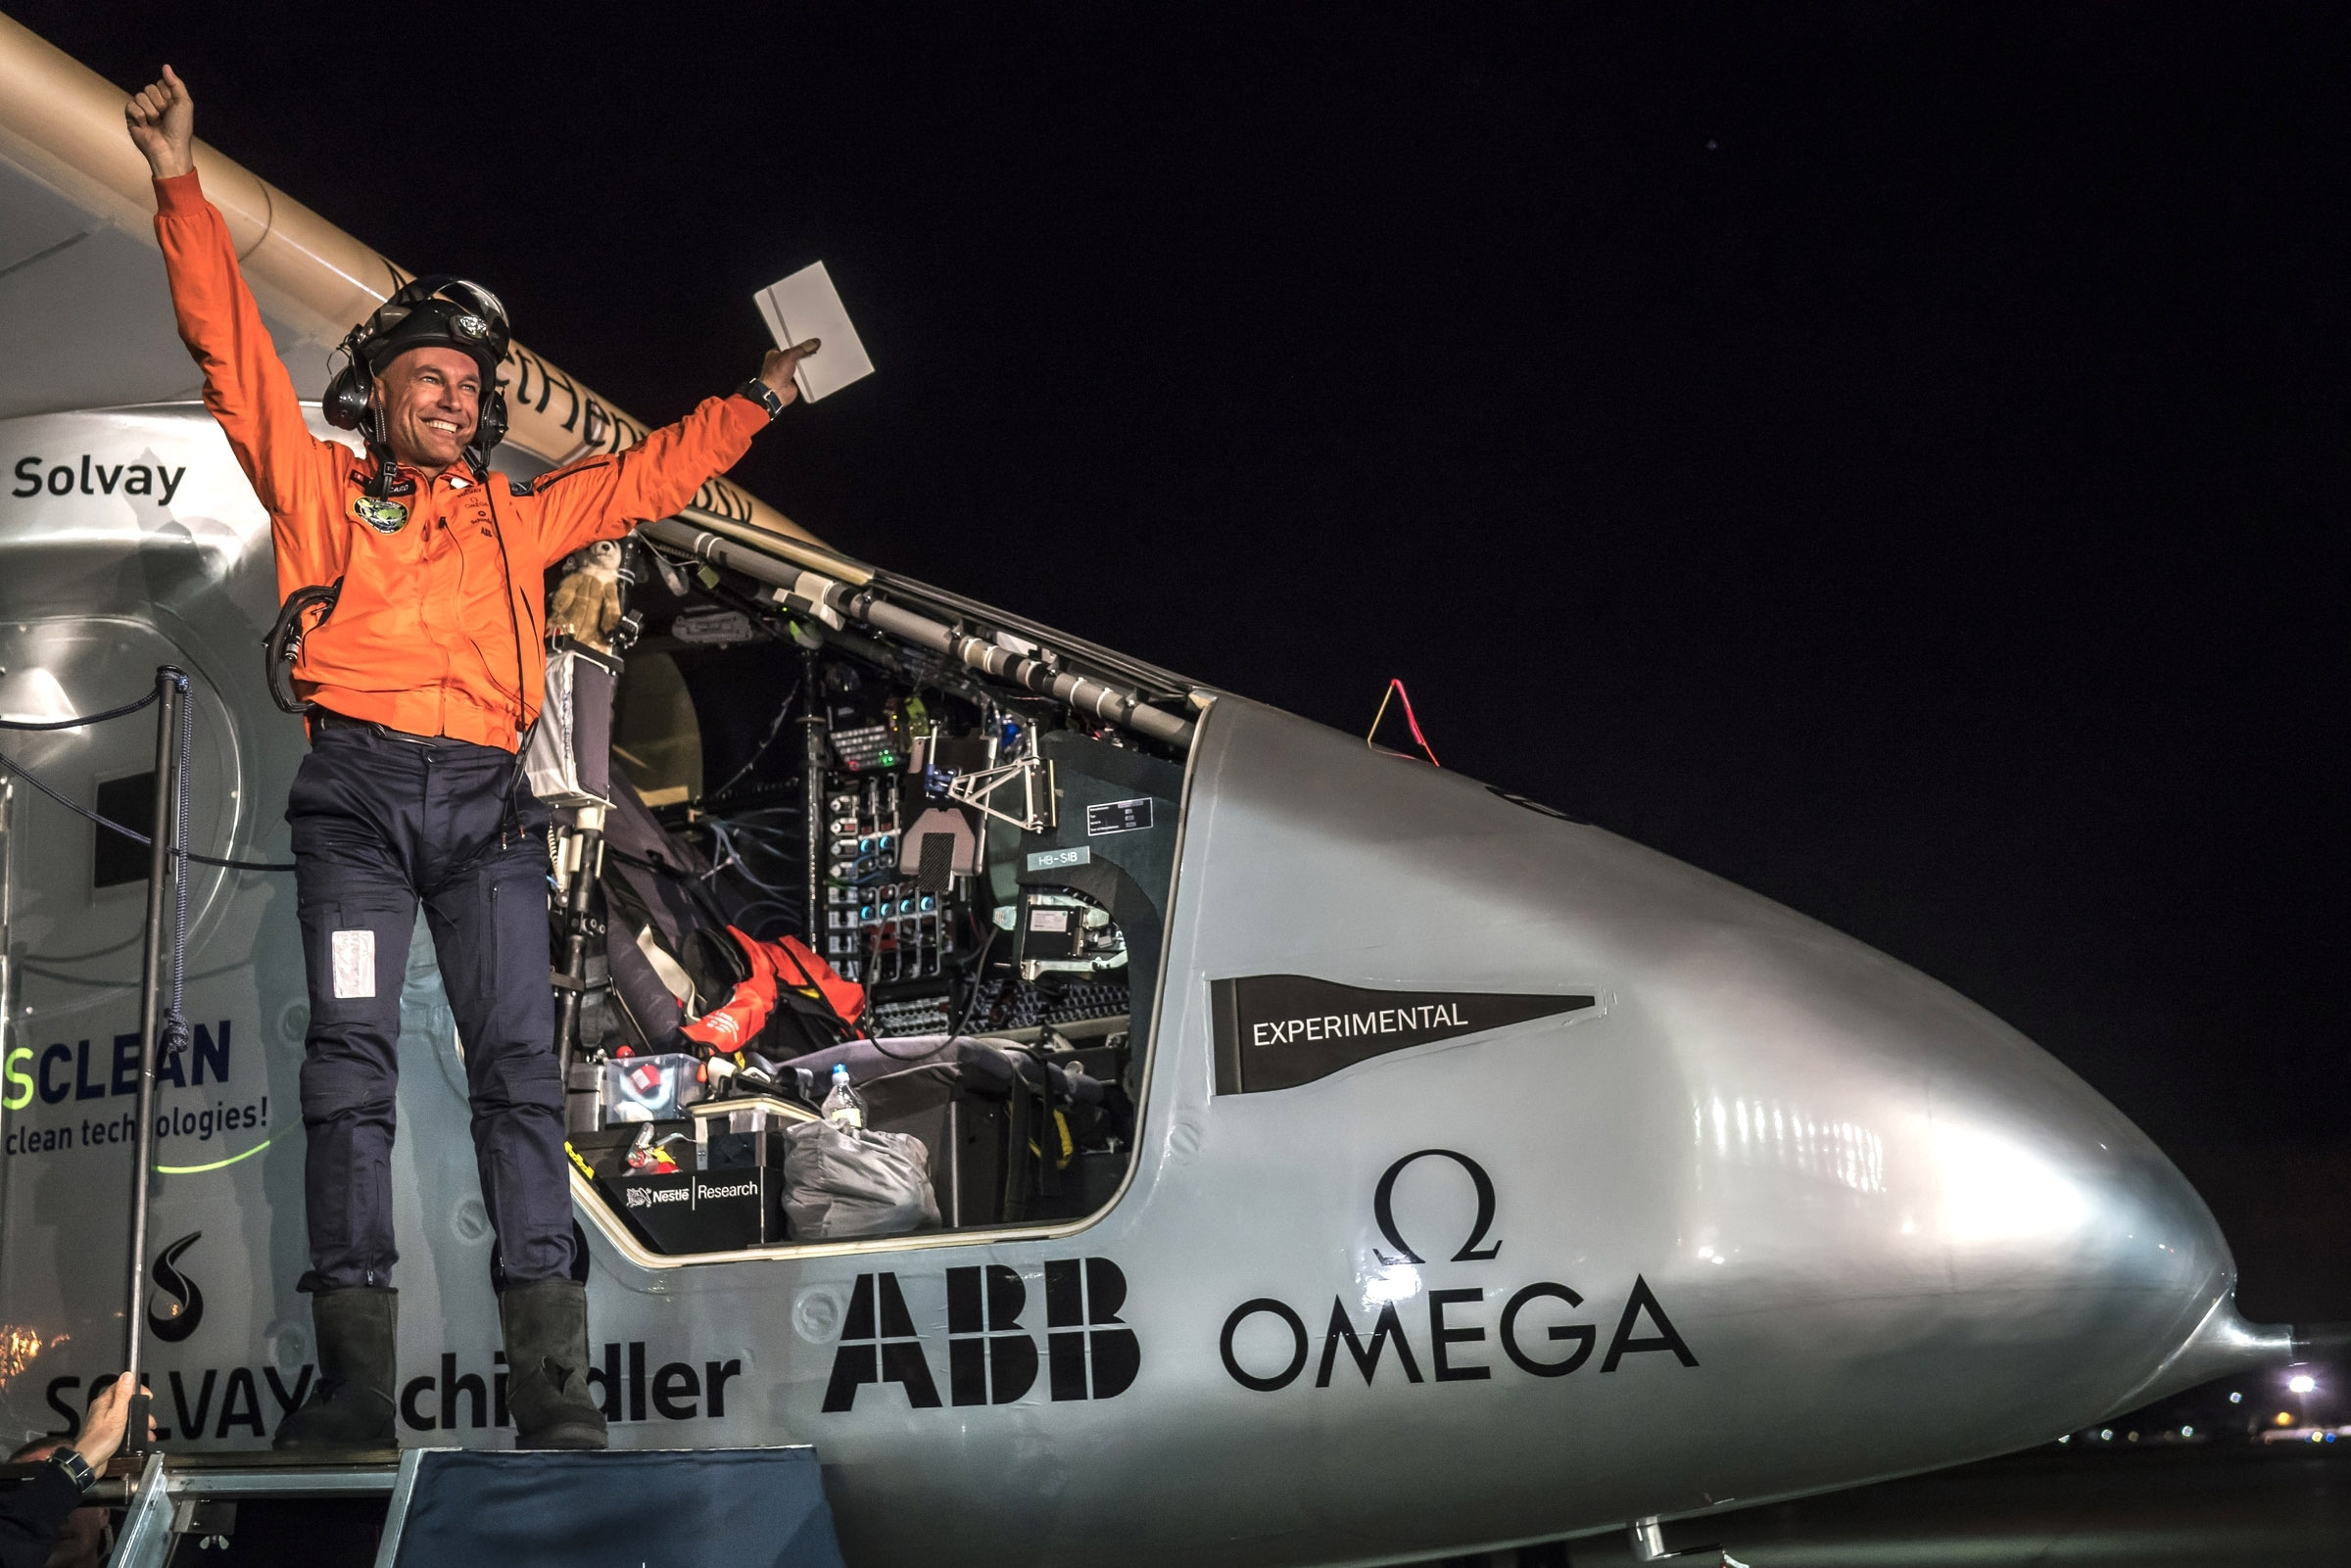 Swiss pilot Bertrand Piccard of Solar powered plane 'Solar Impulse 2', celebrates after a flight from Hawaii during its circumnavigation, at Moffett Airfield  in Silicon Valley, on April 23, 2016 in Mountain View, California. The Solar Impulse 2 is equipped with 17,000 solar cells, has a wingspan of 72 metres, and yet weighs just over 2 tonnes.